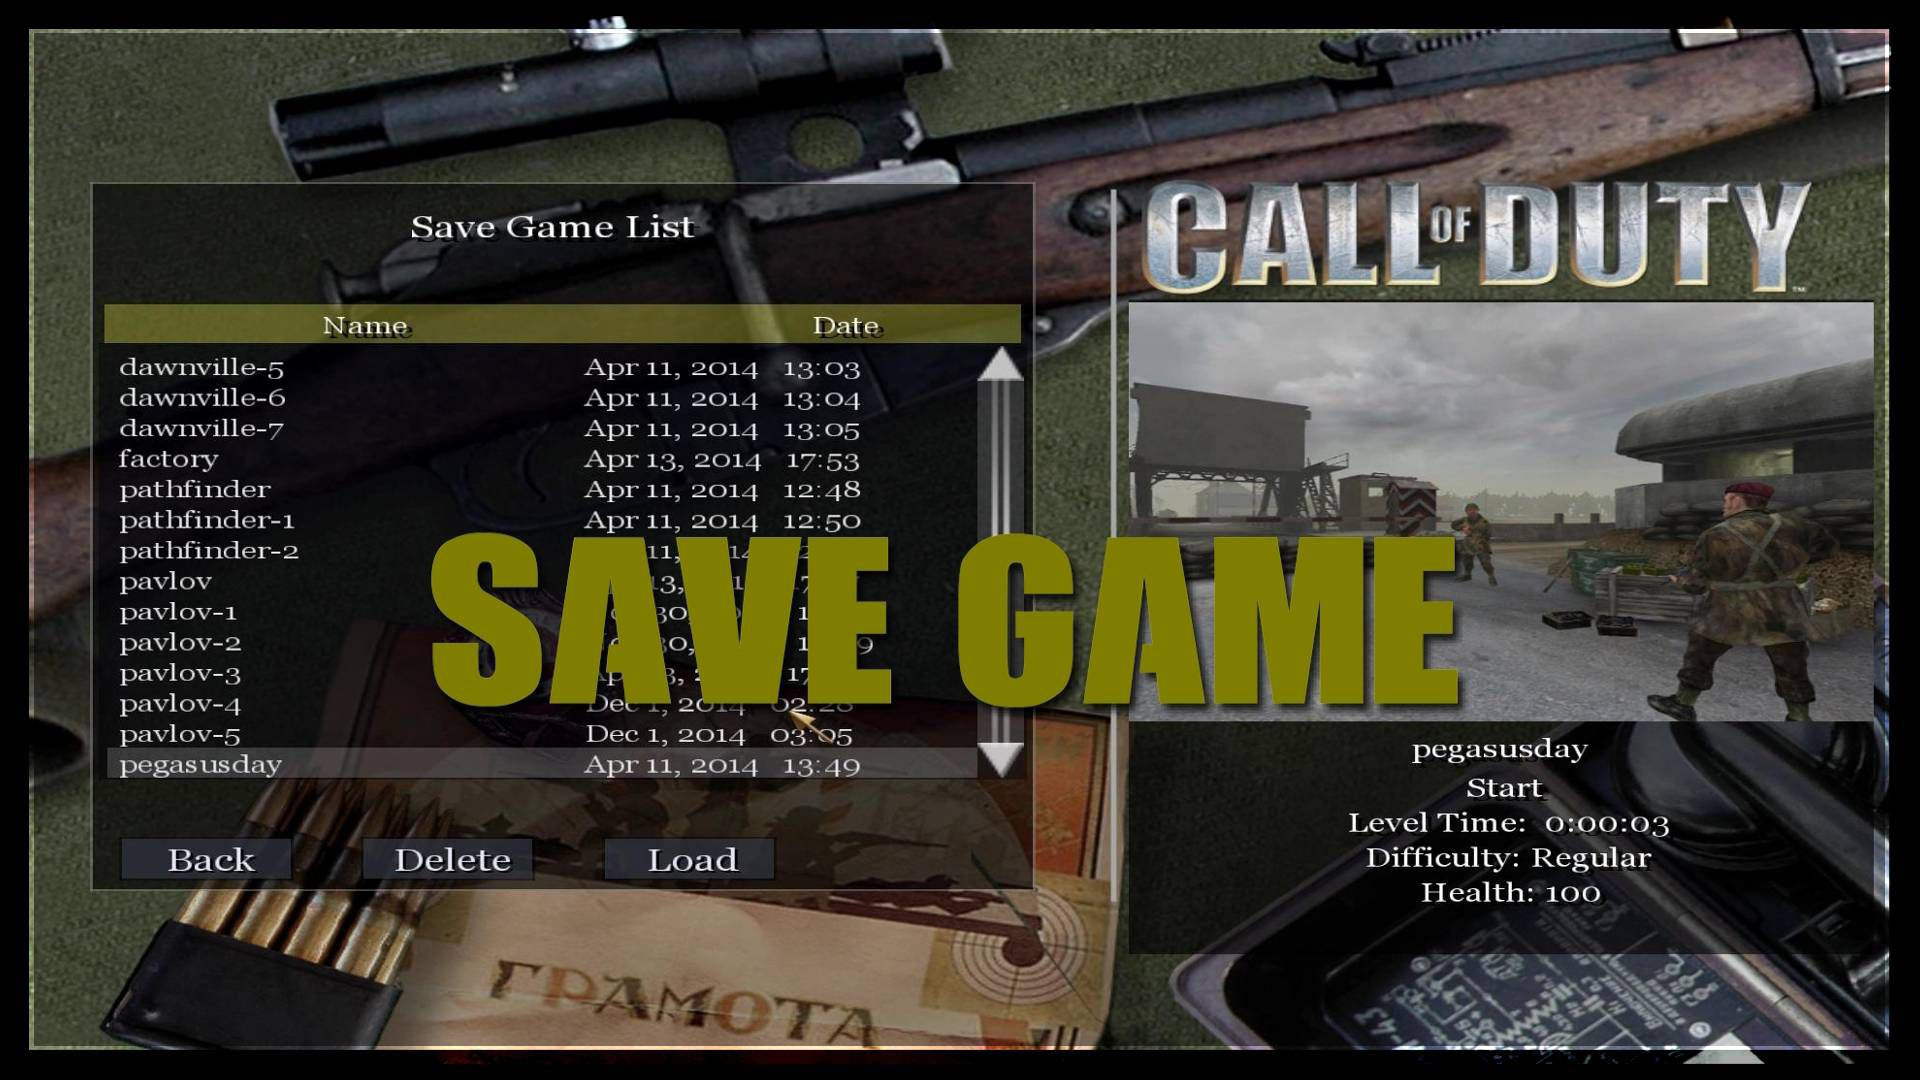 Call of Duty Save Game